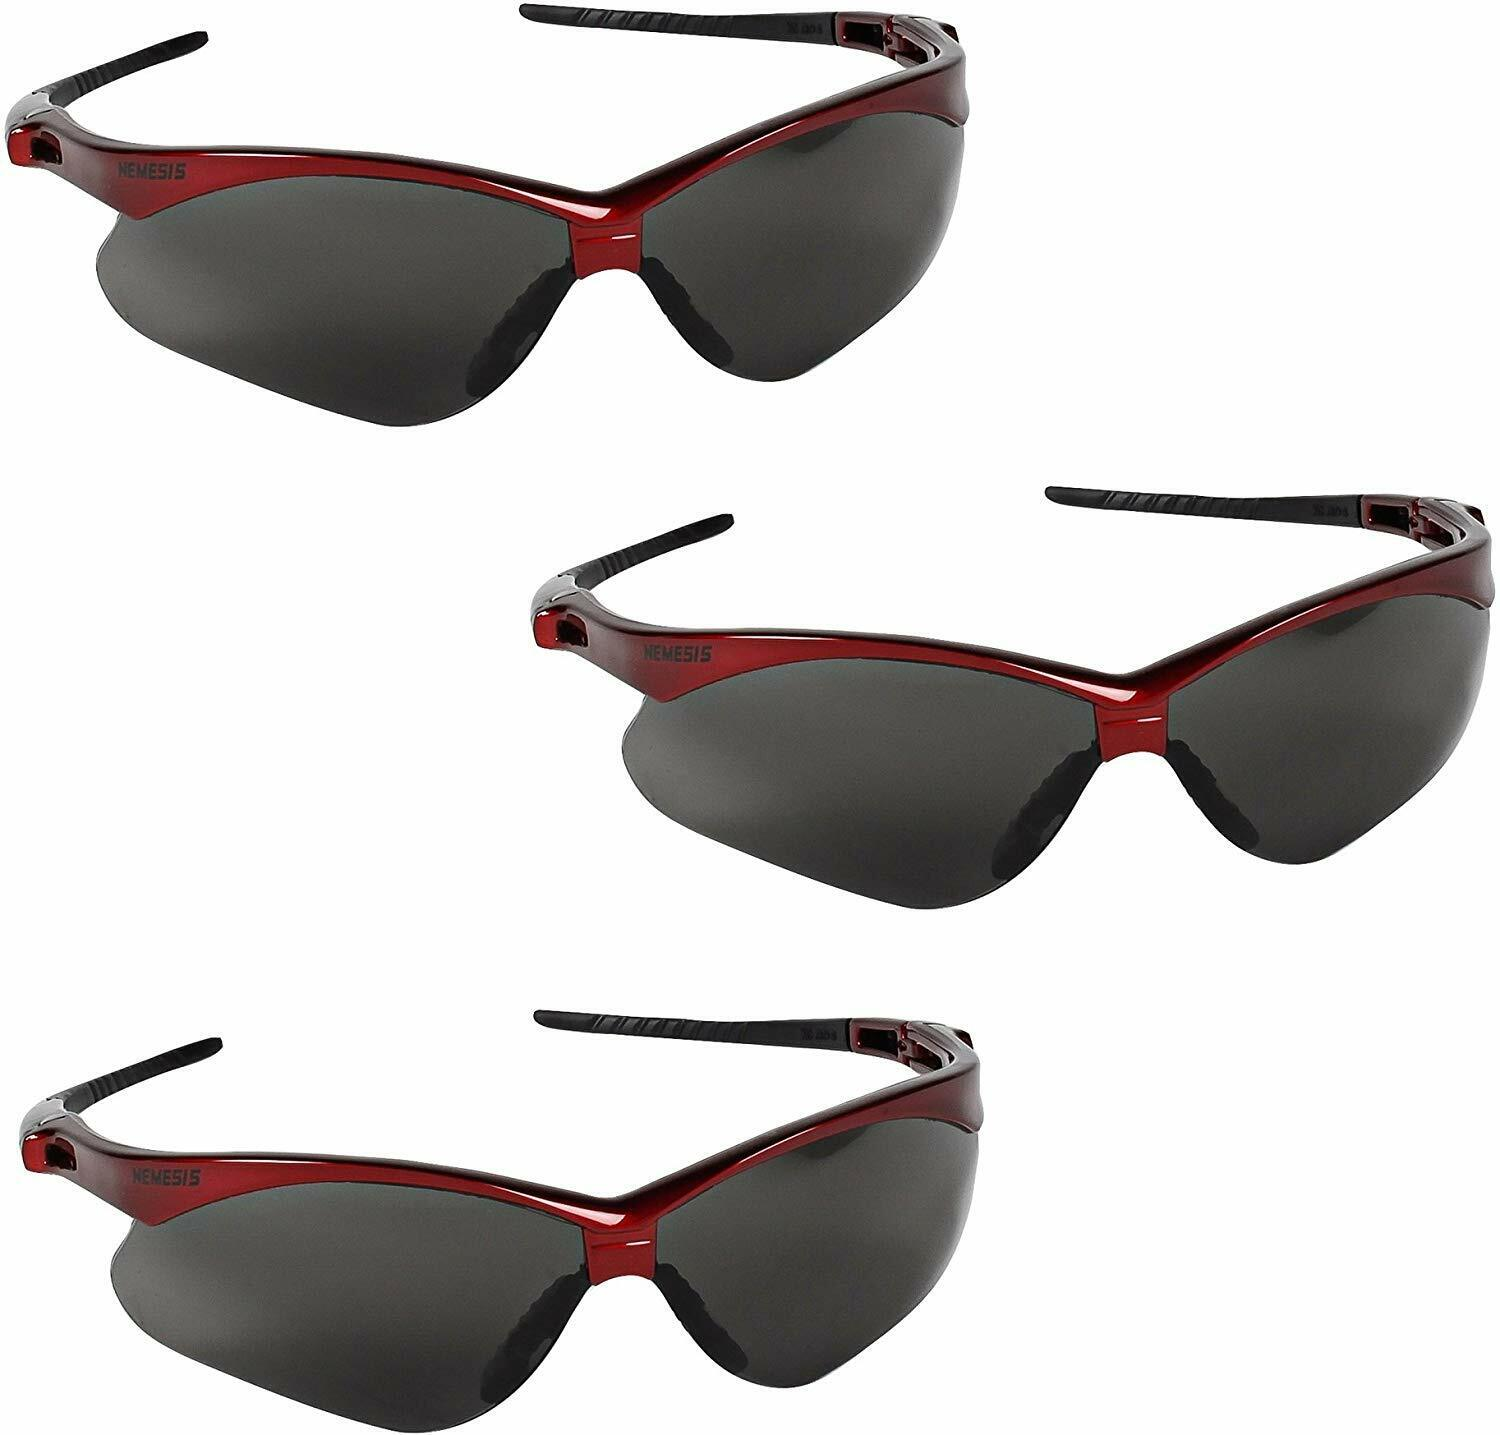 Jackson Safety 22611 Nemesis Safety Glasses 3 Pair Inferno Red Frame Smoke Lens Business & Industrial